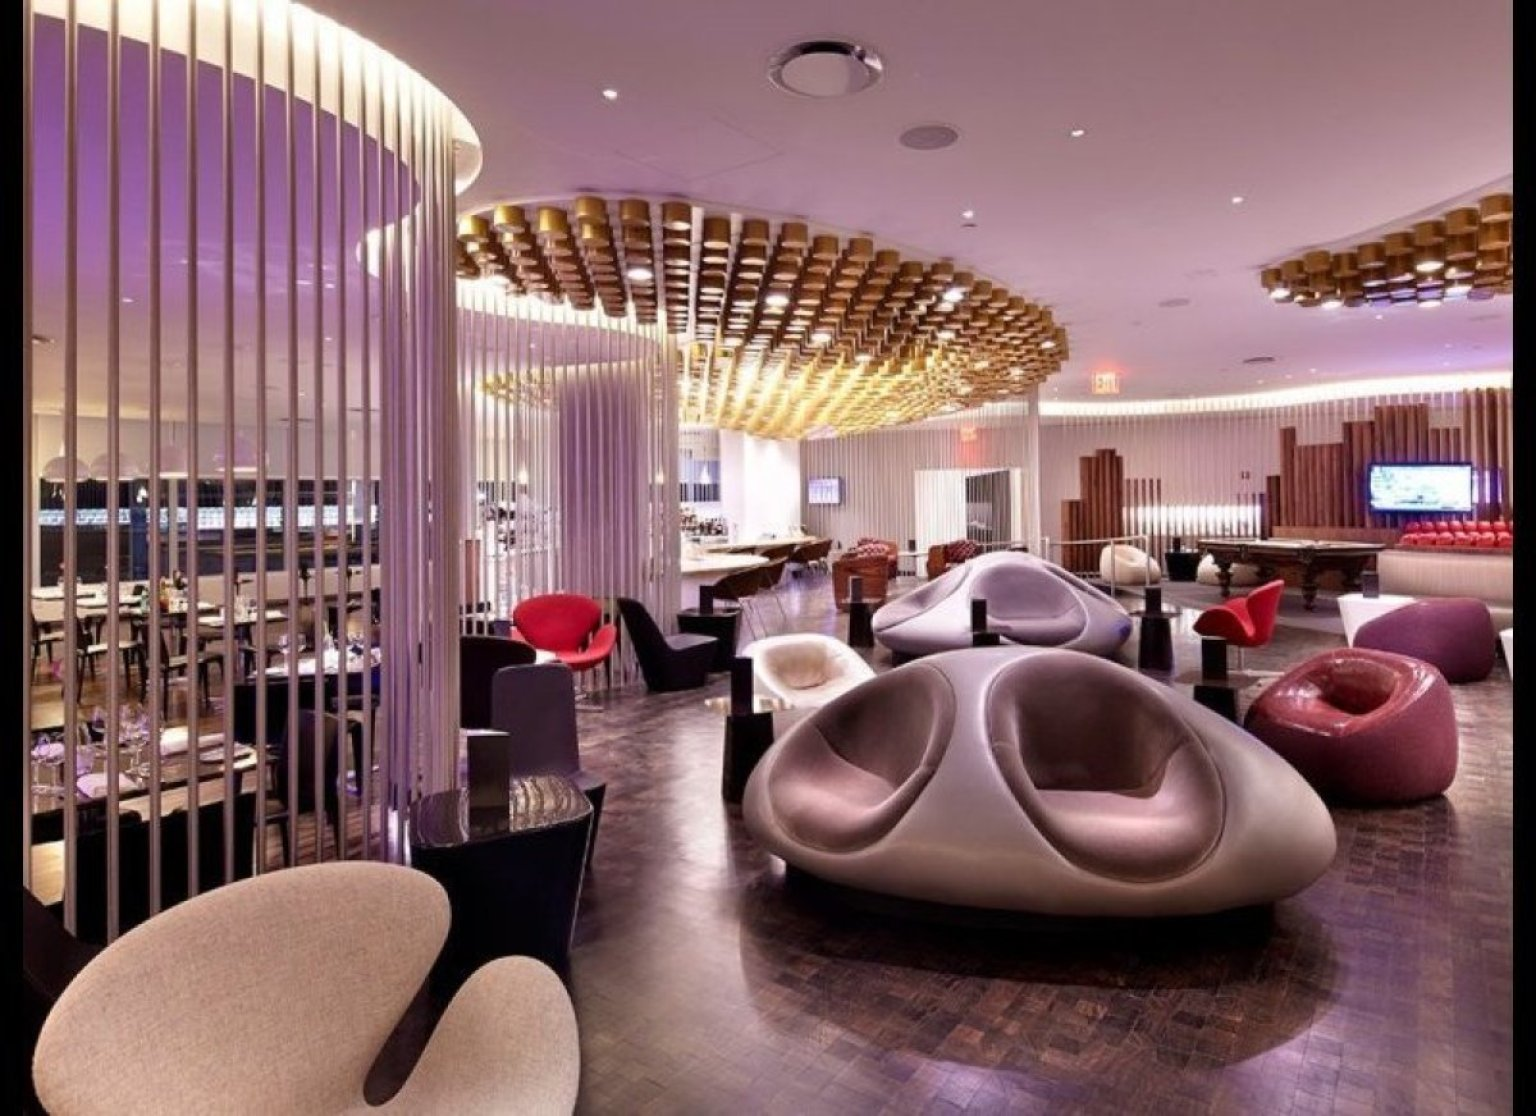 The world 39 s fanciest airport lounges conde nast traveler for Fanciest hotel in the world